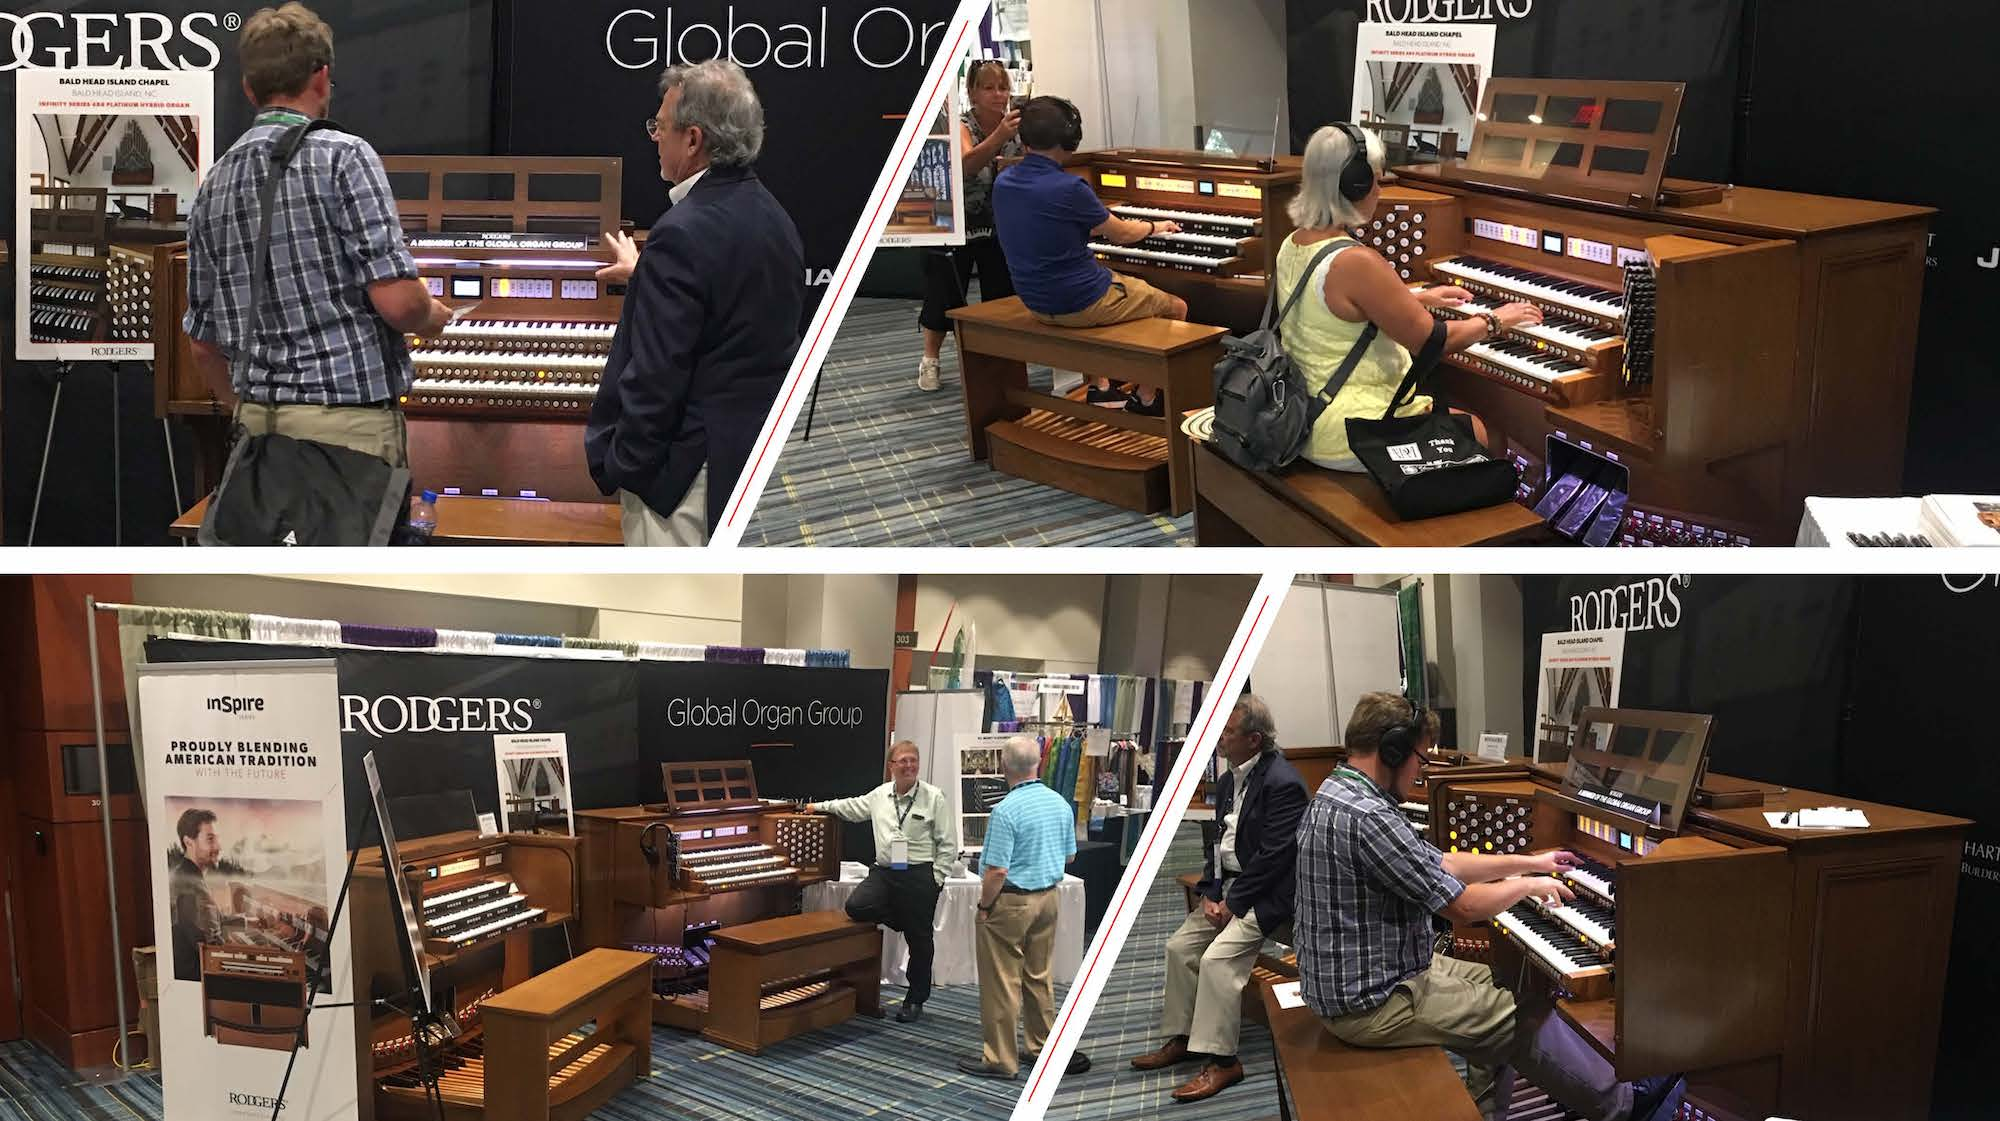 Rodgers and the Global Organ Group attended the 41st annual NPM